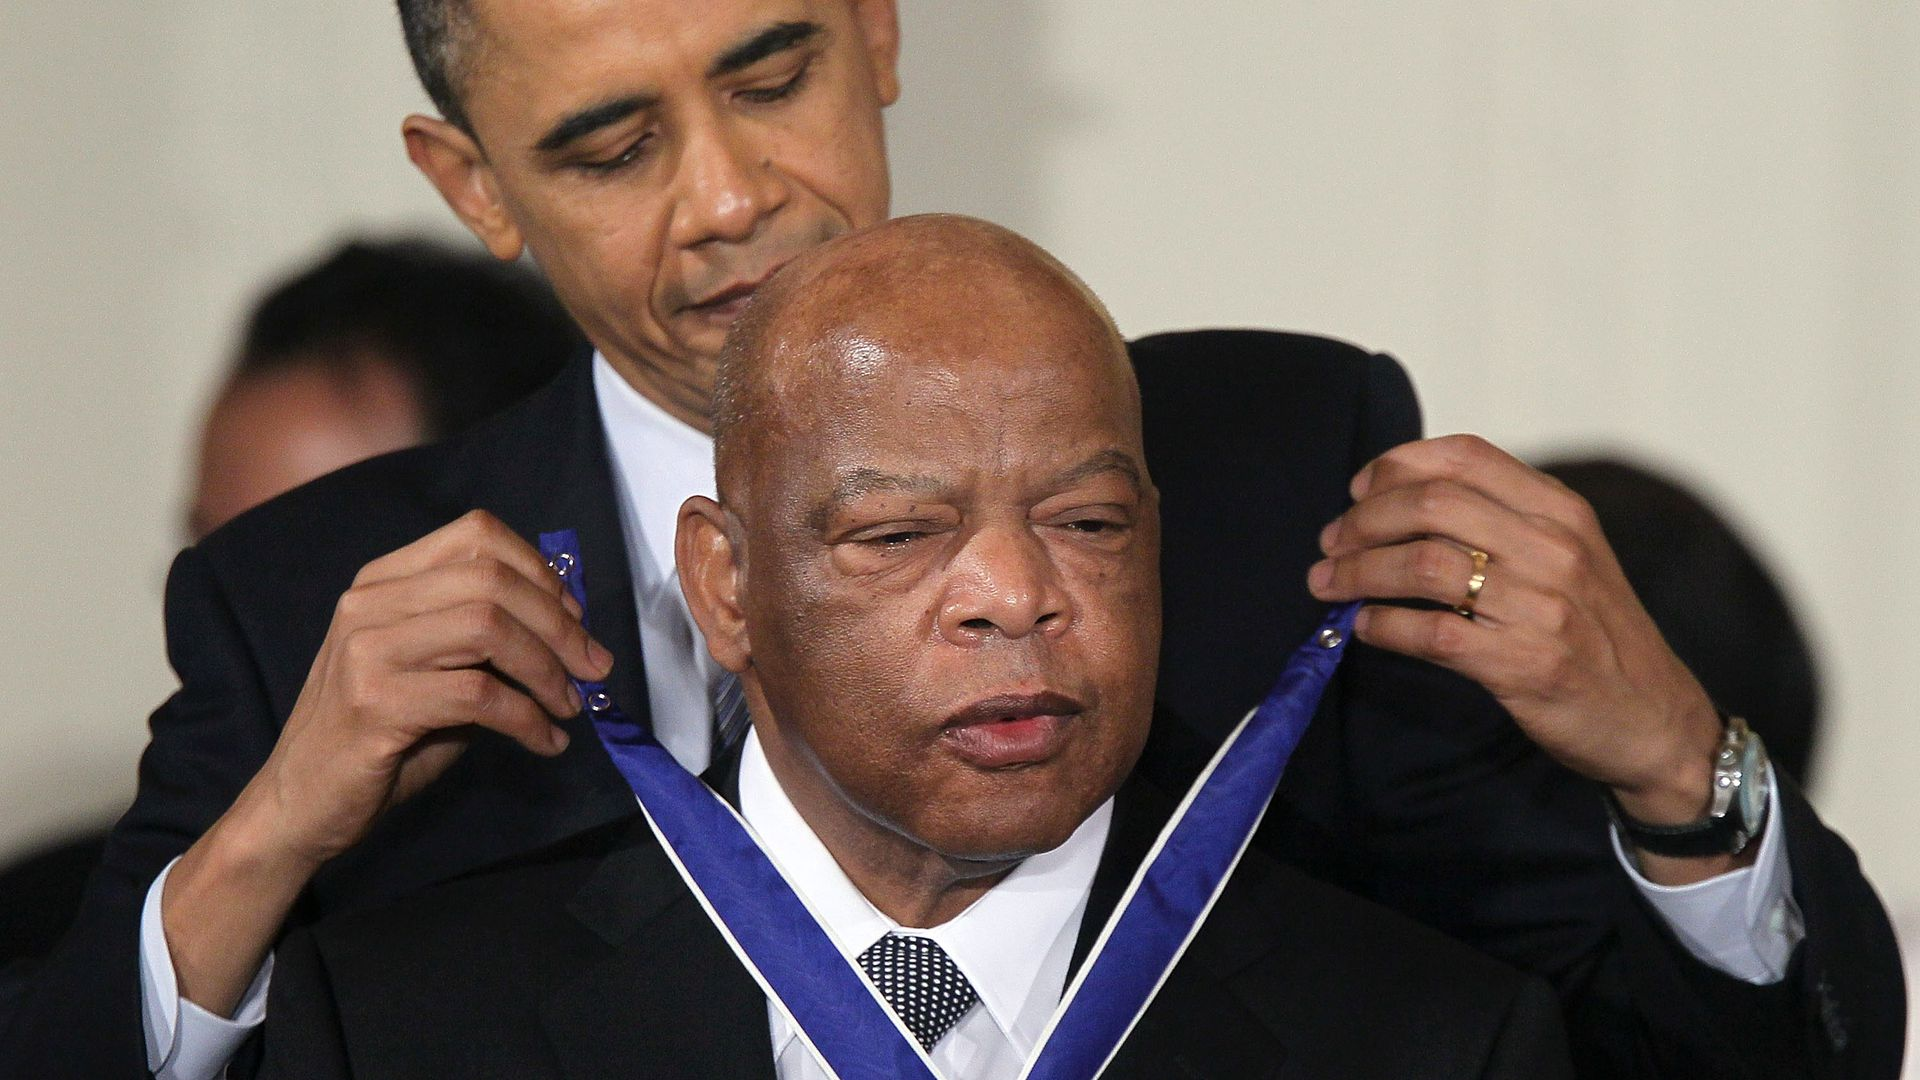 Rep. John Lewis (D-GA) (R) is presented with the 2010 Medal of Freedom by President Barack Obama during an East Room event at the White House February 15, 2011